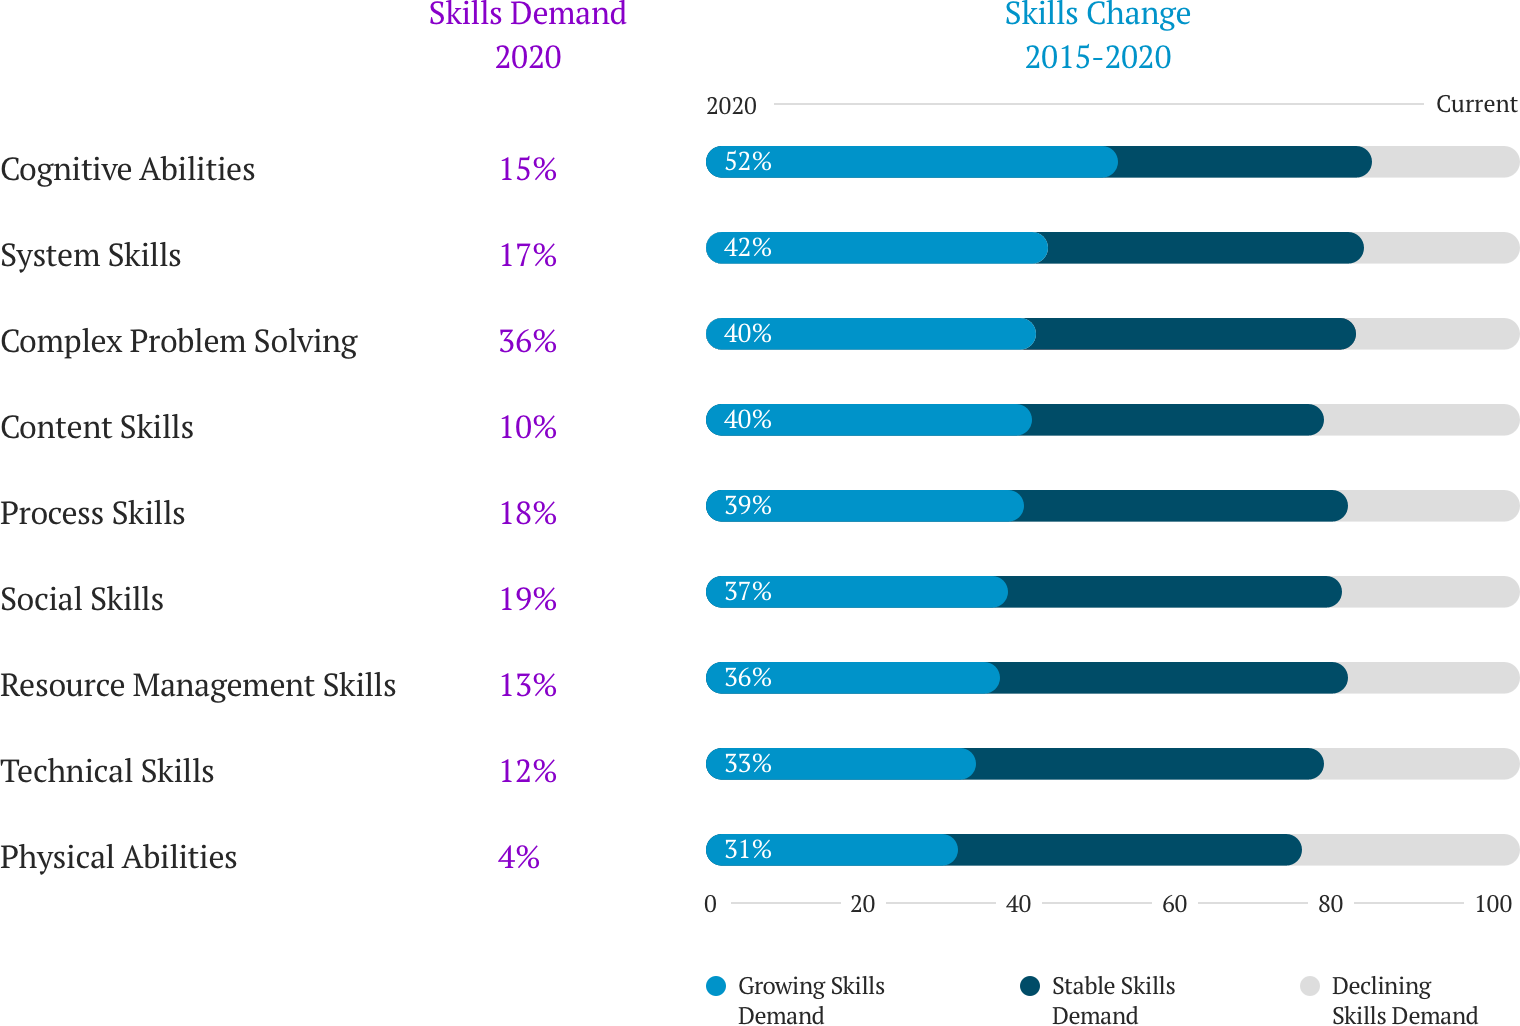 World Economic Forum's chart illustrating the change in skills demand between 2015 and 2020. The chart indcates that jobs of the future will require cognitive abilities, system skills, complex problem solving, process skills, resource management, technical skills and physical abilities.